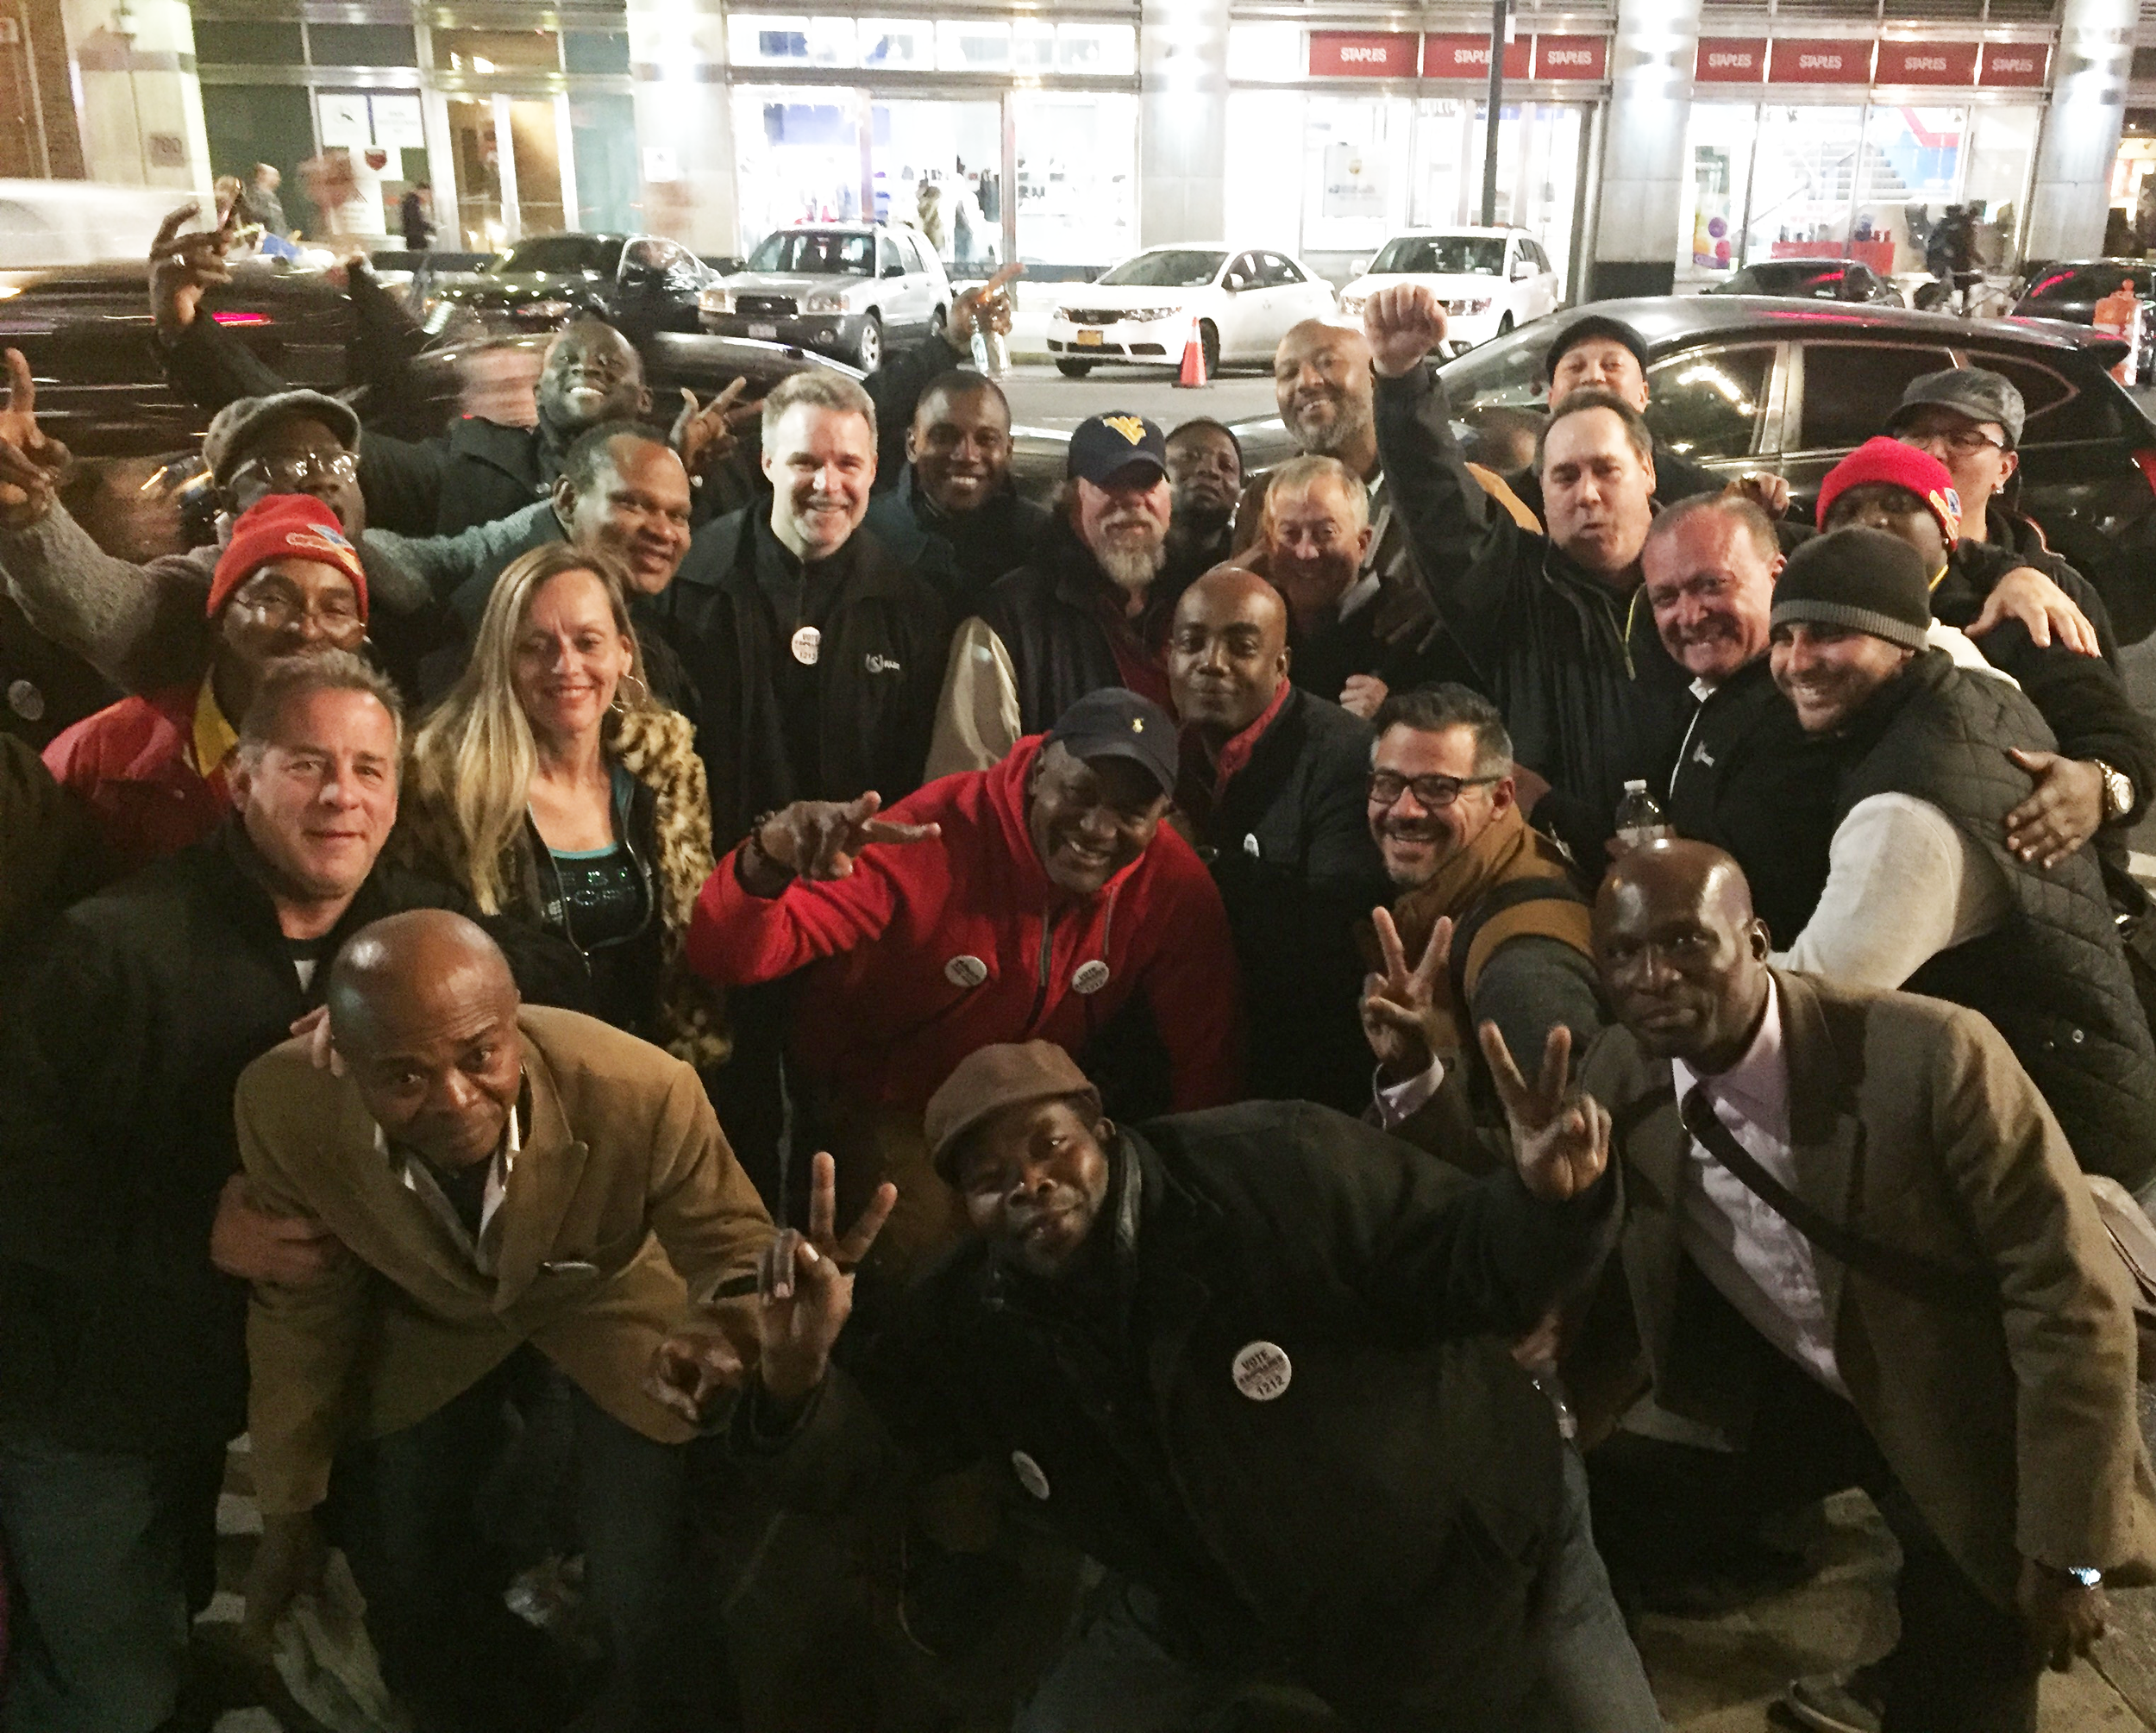 USWU organizers and JAD members celebrate after Local 1212's victory in their election to represent ticket agents and tour guides at City Sights/Gray Lines.